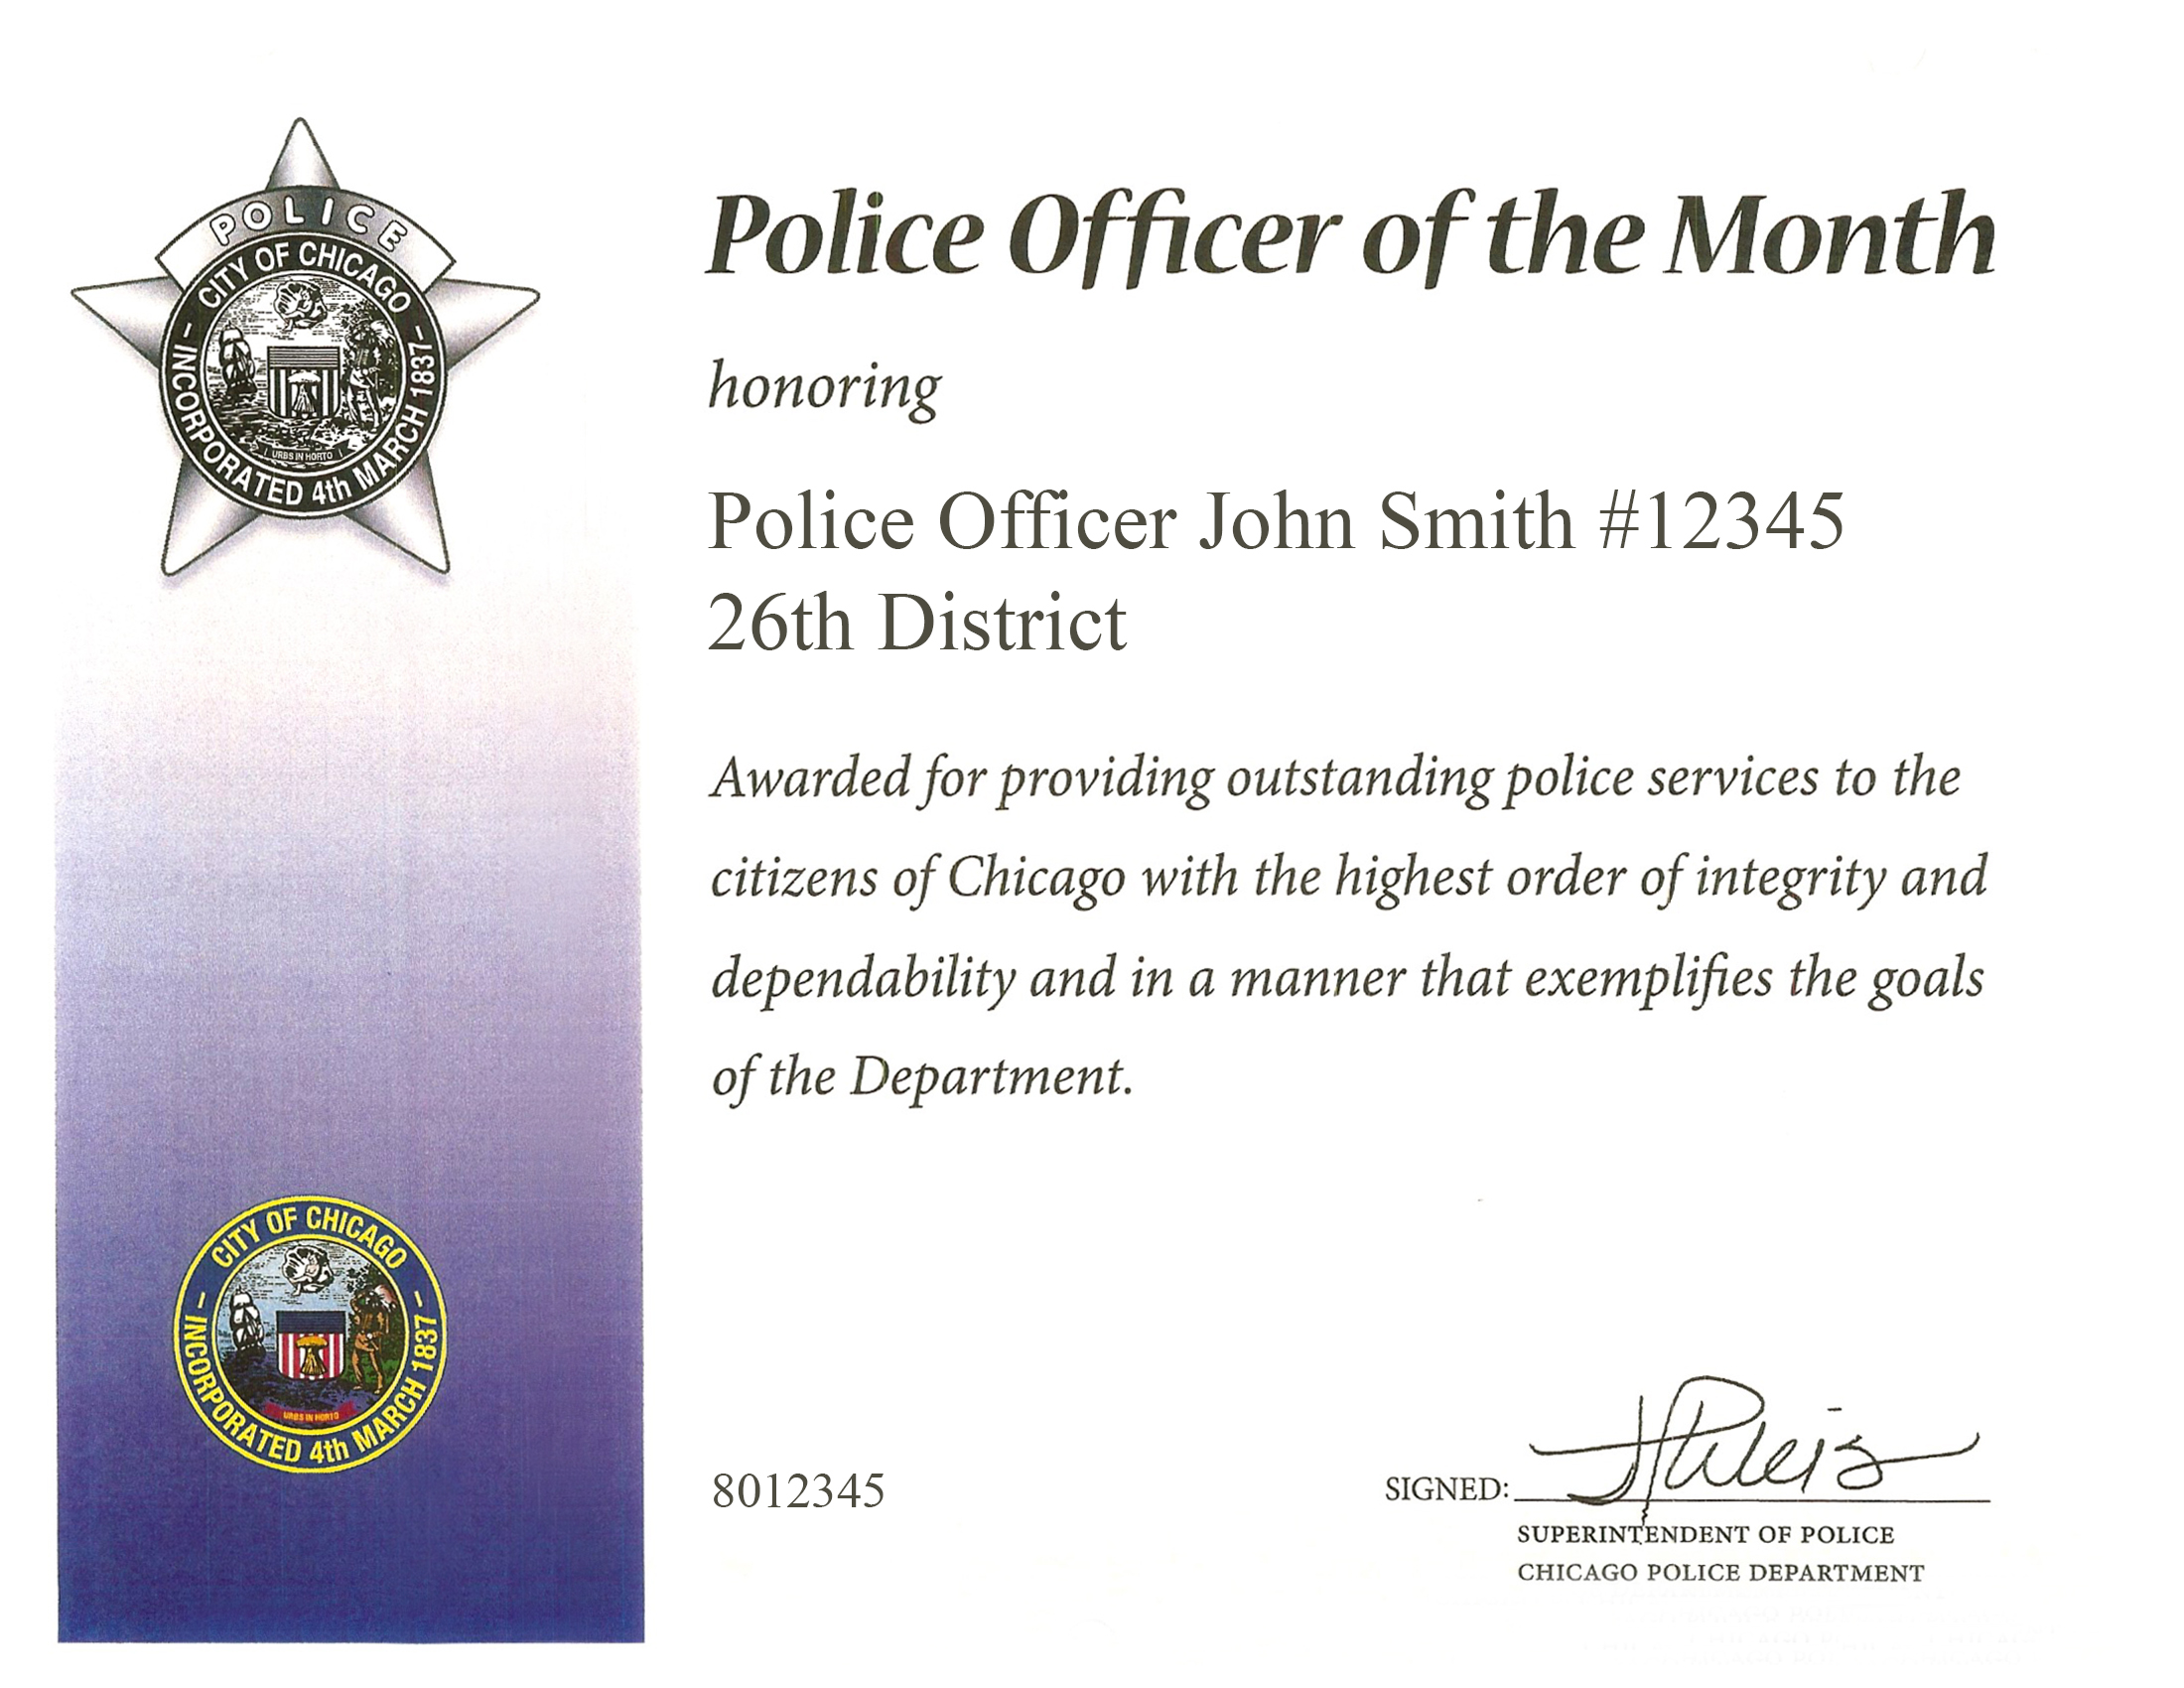 Police Officer of the Month Award Certificate